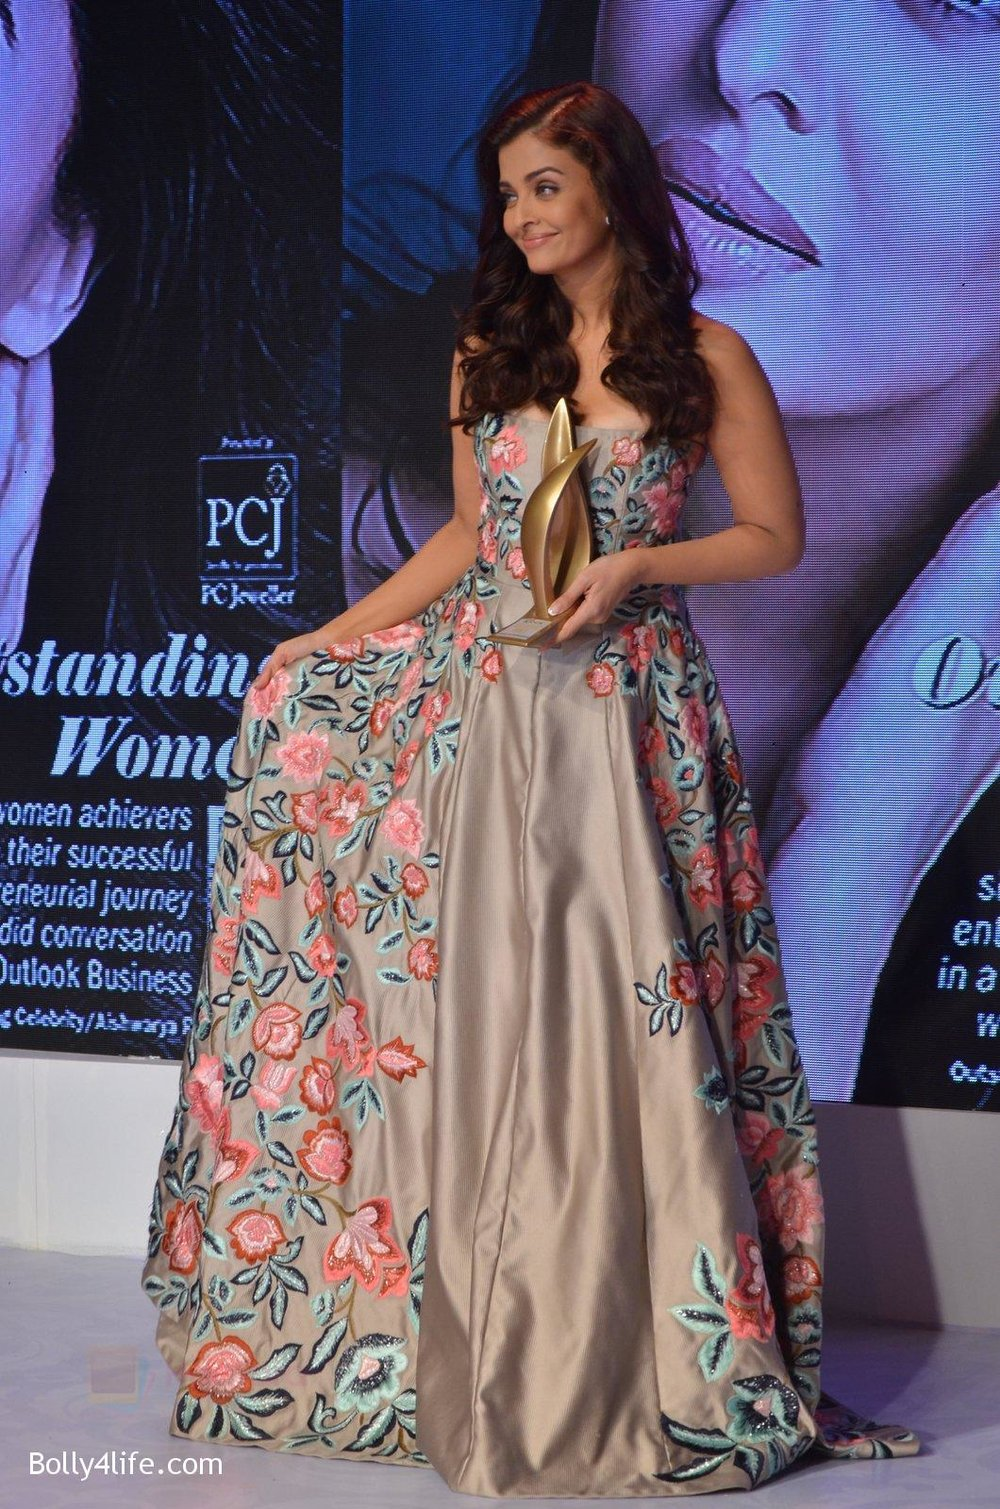 Aishwarya-Rai-Bachchan-at-Outlook-Business-Women-Awards-on-7th-Oct-2016-206.jpg